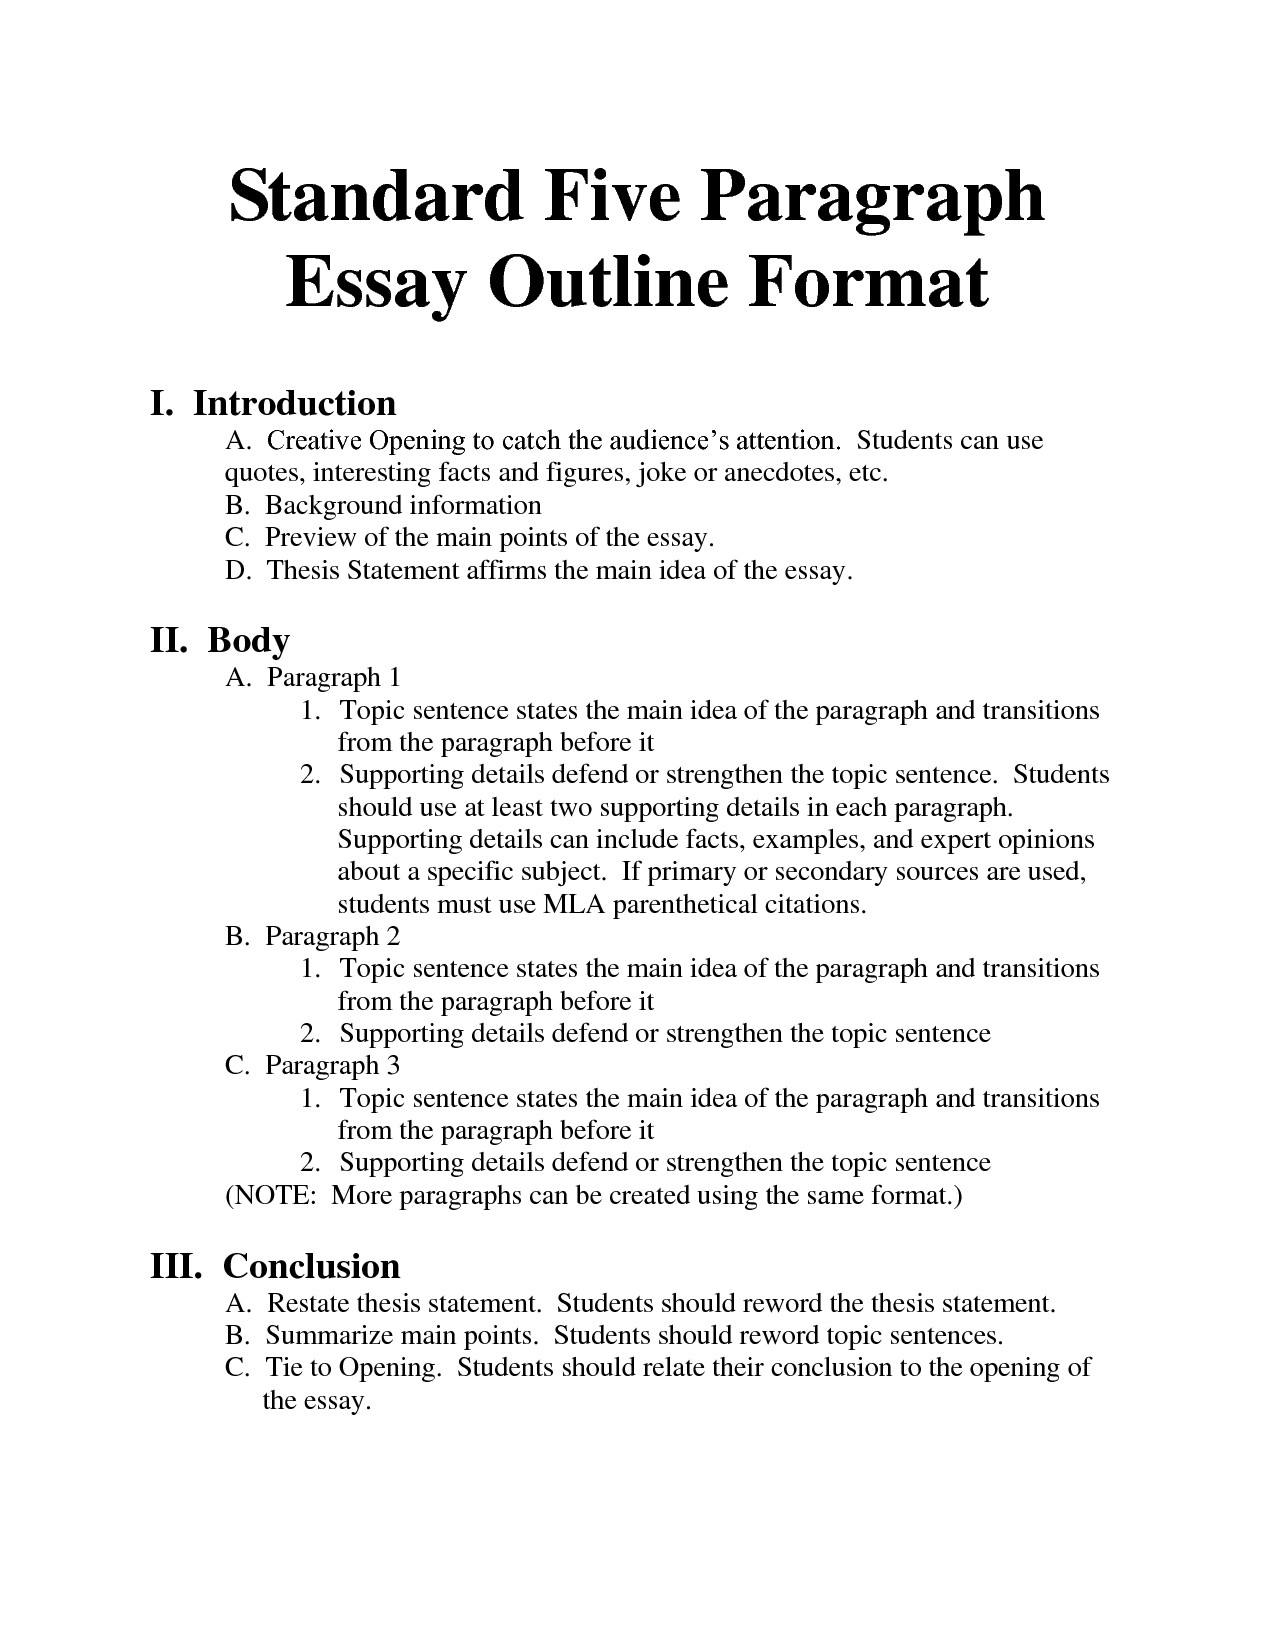 004 Argumentative Essays For College Refrence Template In Persuasive Level Exceptional Essay Examples Topics Full